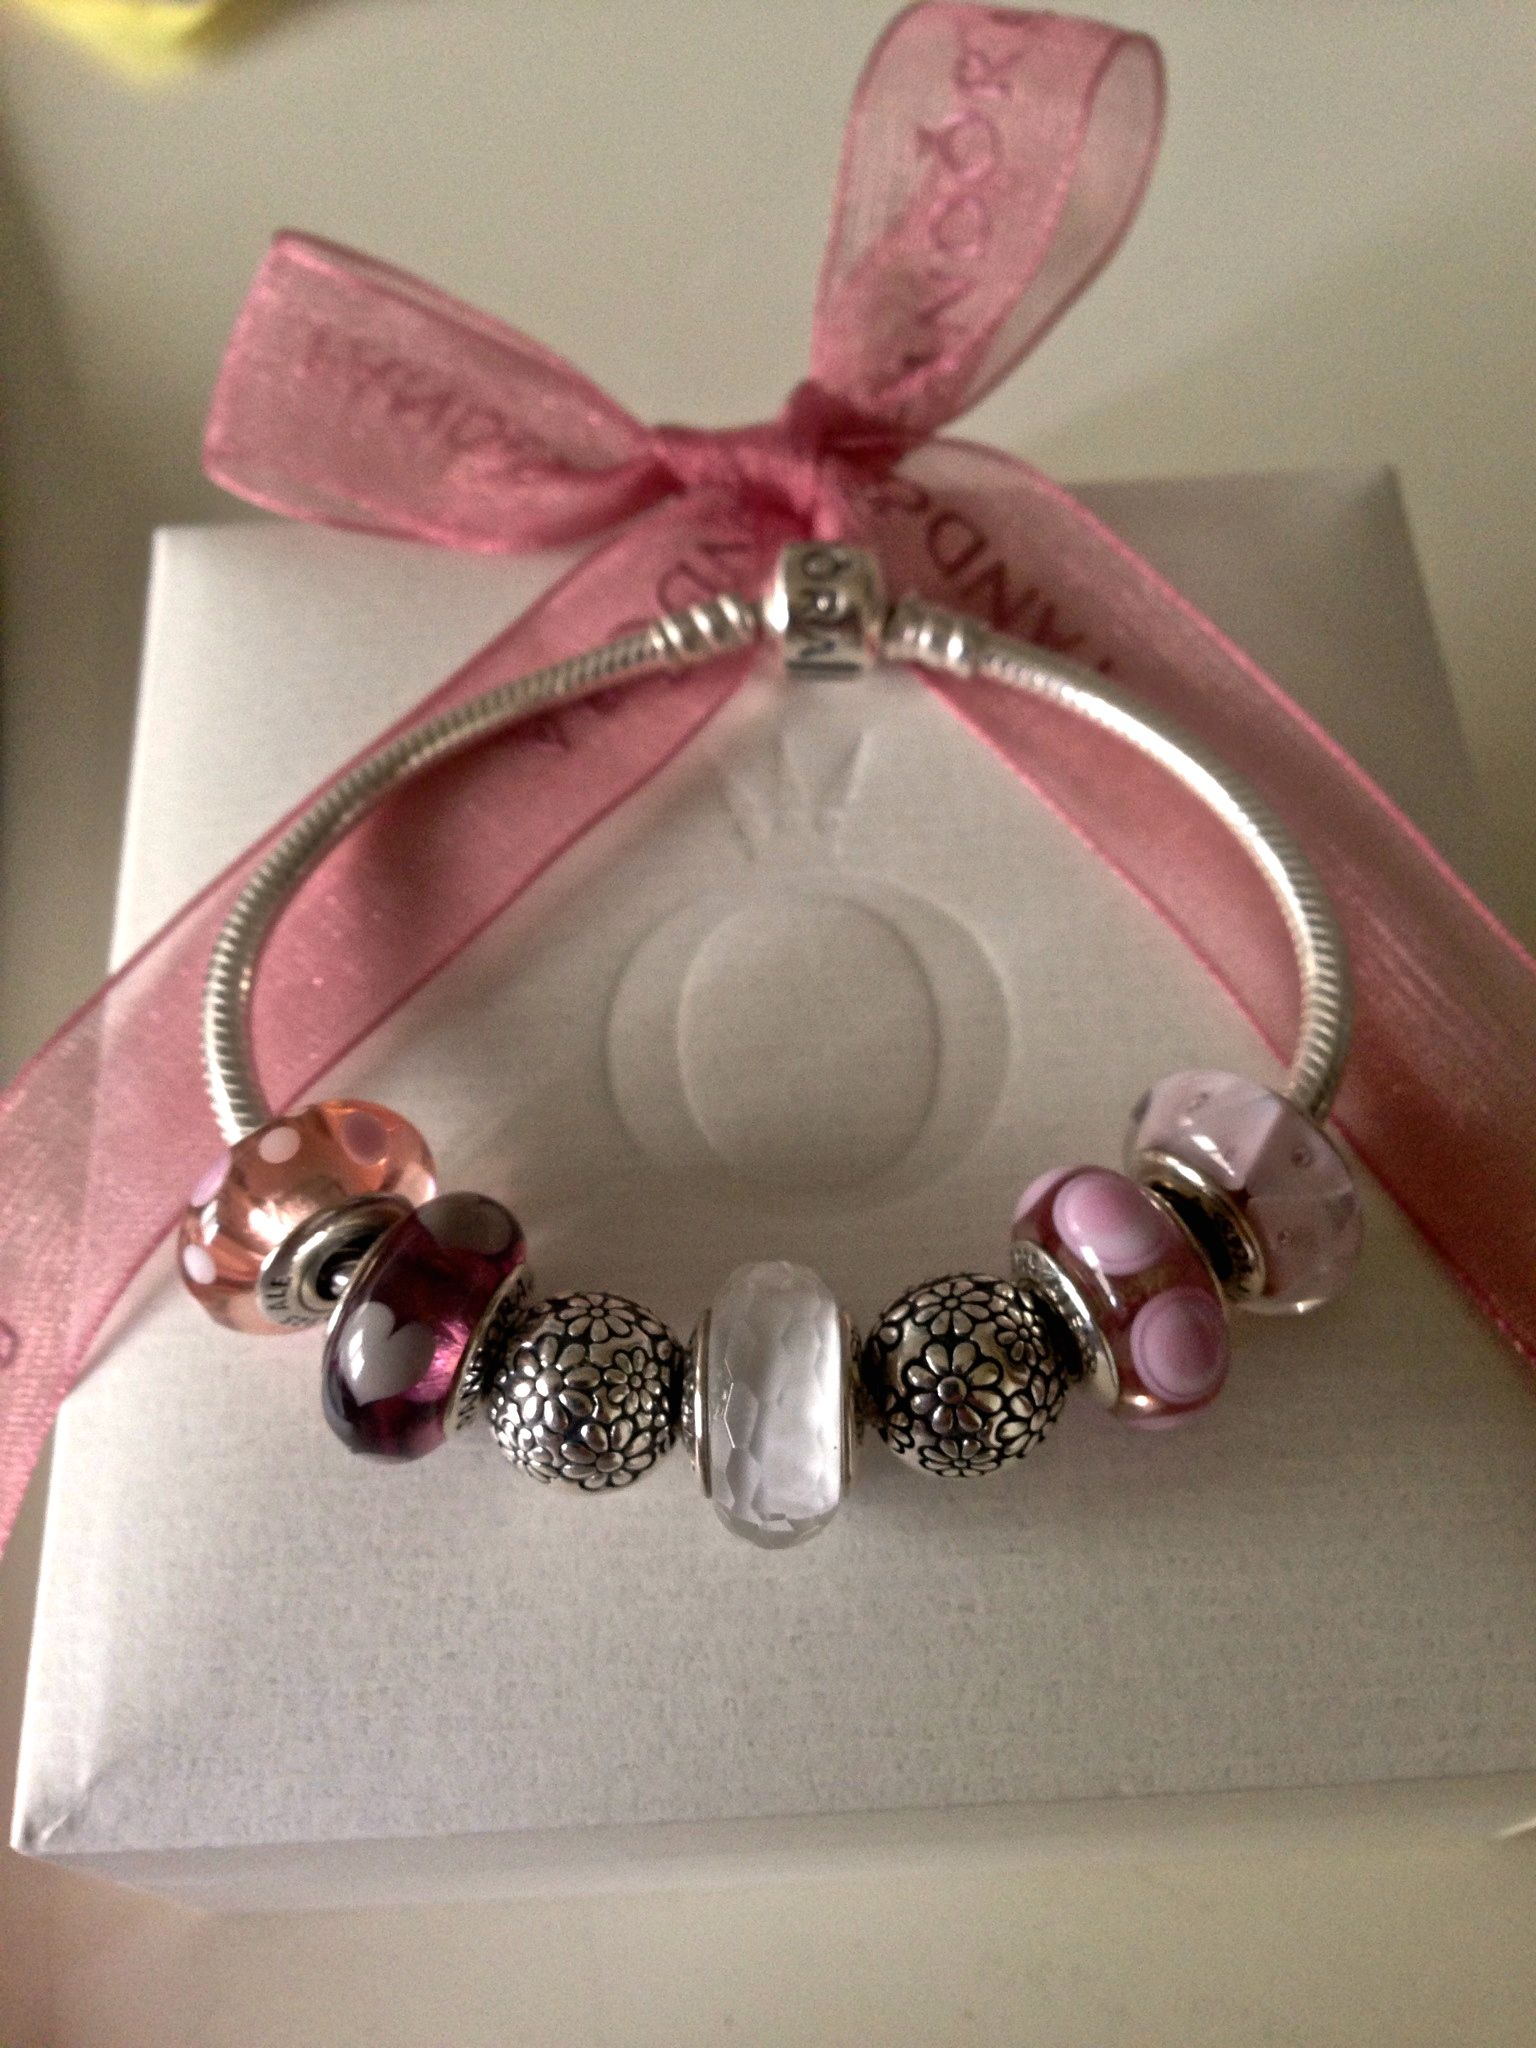 304ebd70a A tasteful Pandora collection of muted pinks, white faceted Murano and a  little silver. Understated.